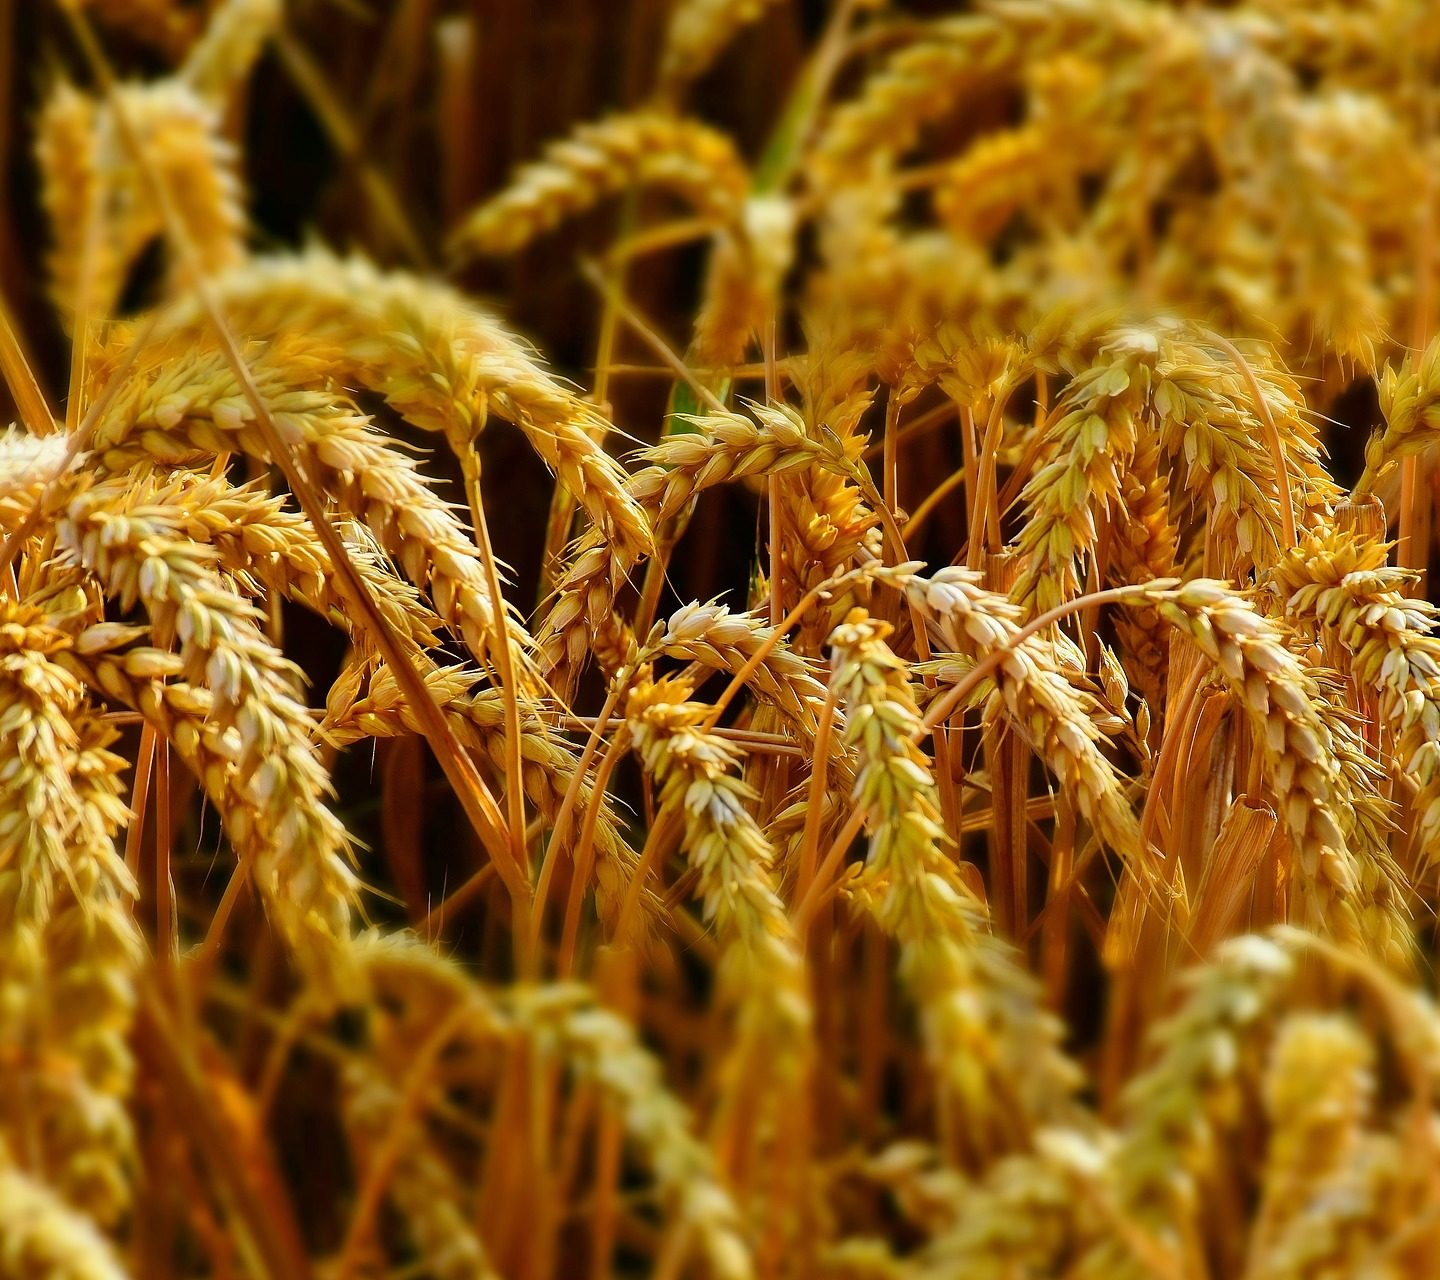 A newly discovered gene confers resistance to the Ug99 strain causing stem rust in wheat